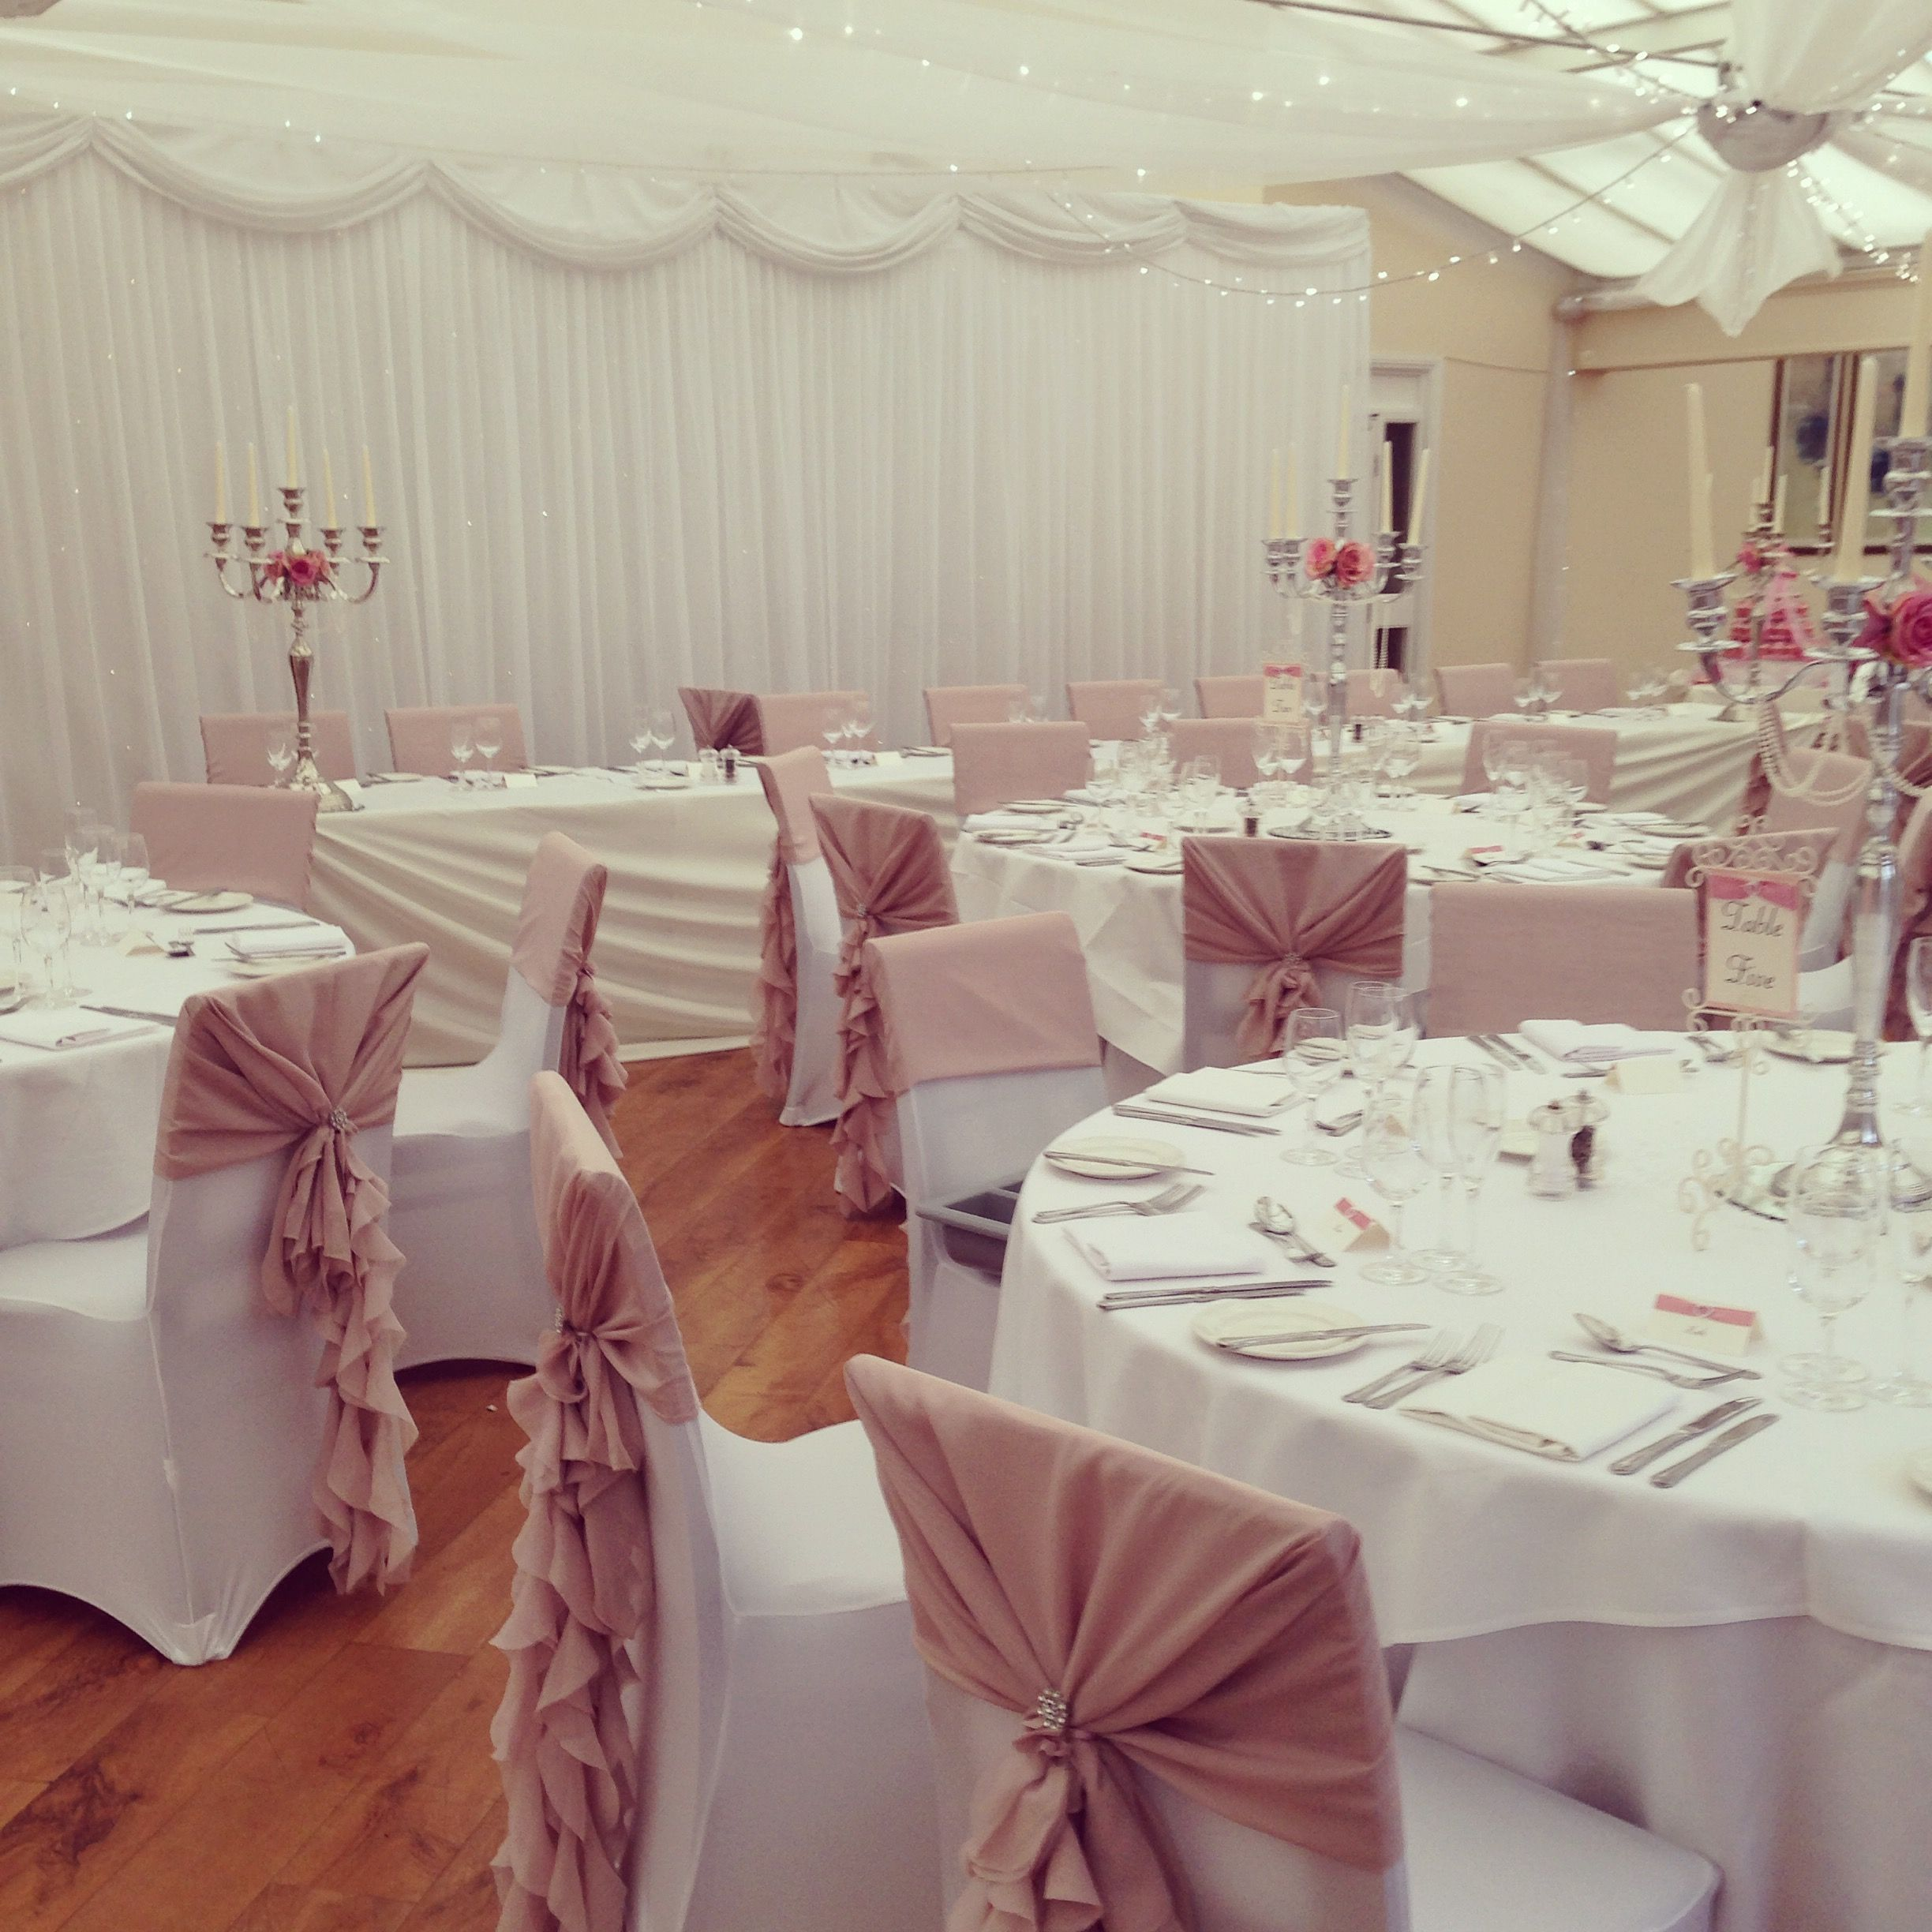 Wedding Chair Covers Yeovil White Parson Slipcovers Dusky Pink Ruffle Hoods With Diamante Brooches Over Candelabra Centrepieces Decorated Roses And Pearl Garlands